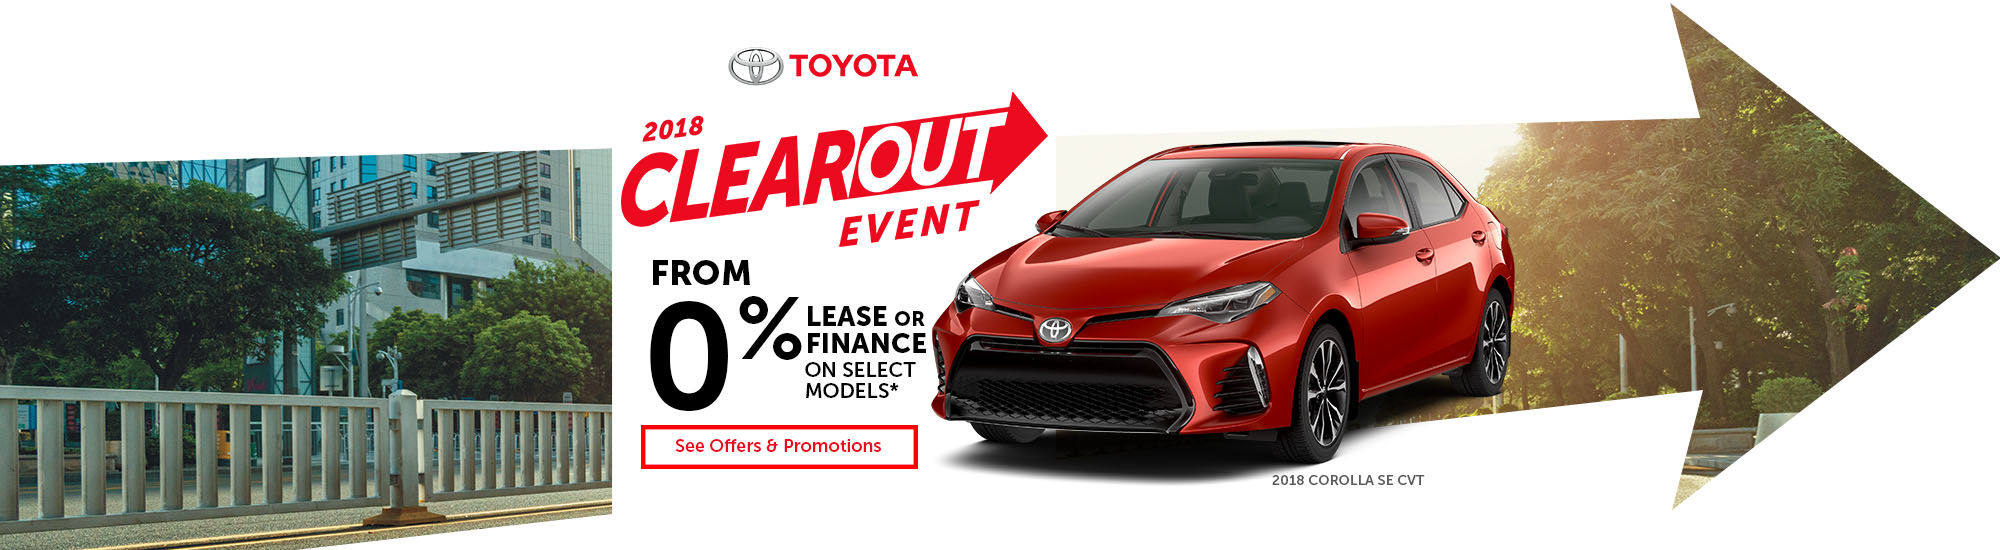 Toyota 2018 clearout event